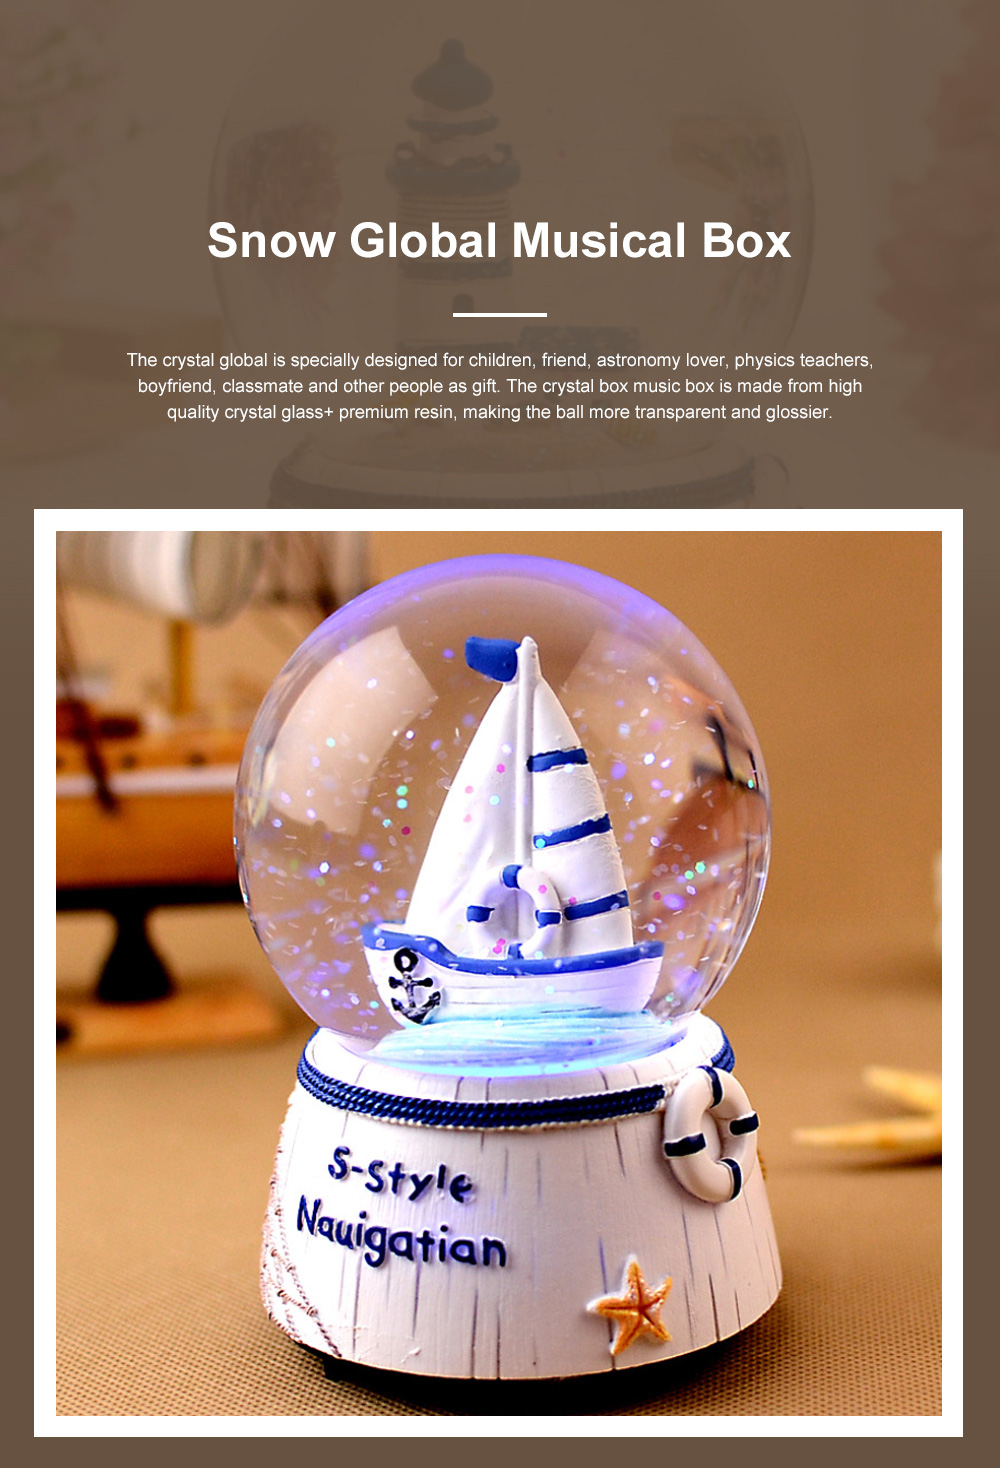 Mini Sailing Lighthouse Crystal Ball LED Base 3D Crystal Ball Night Light with Stand 5 Colors Change for Kids Baby Bedroom Decor Birthday Gift Snow Global Musical Box 0